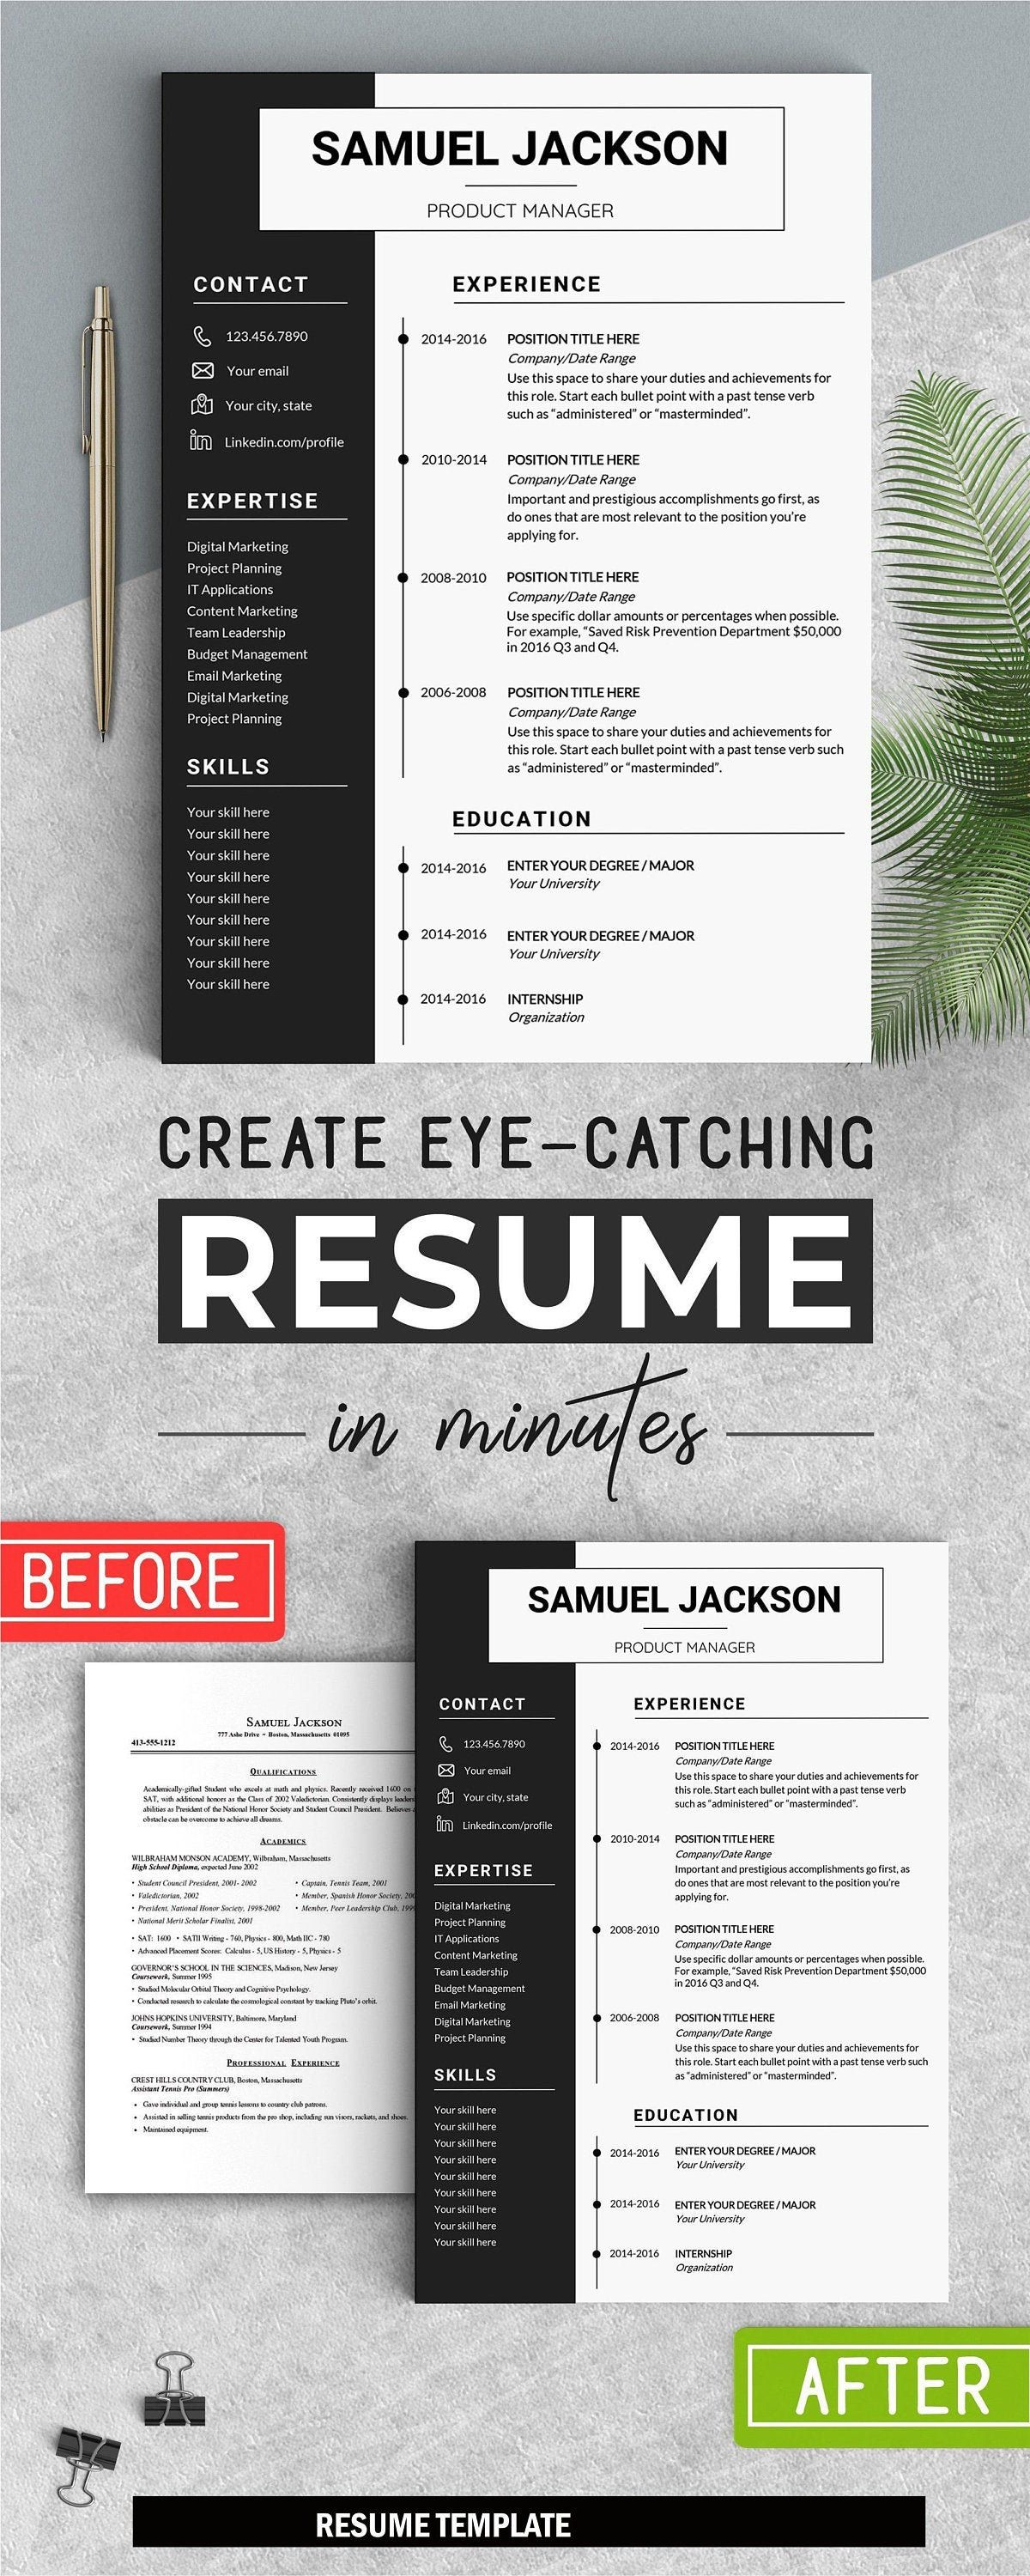 Professional Resume, Instant Download CV, WORD, Cover letter, 1 page resume+Cover letter, Editable in WORD